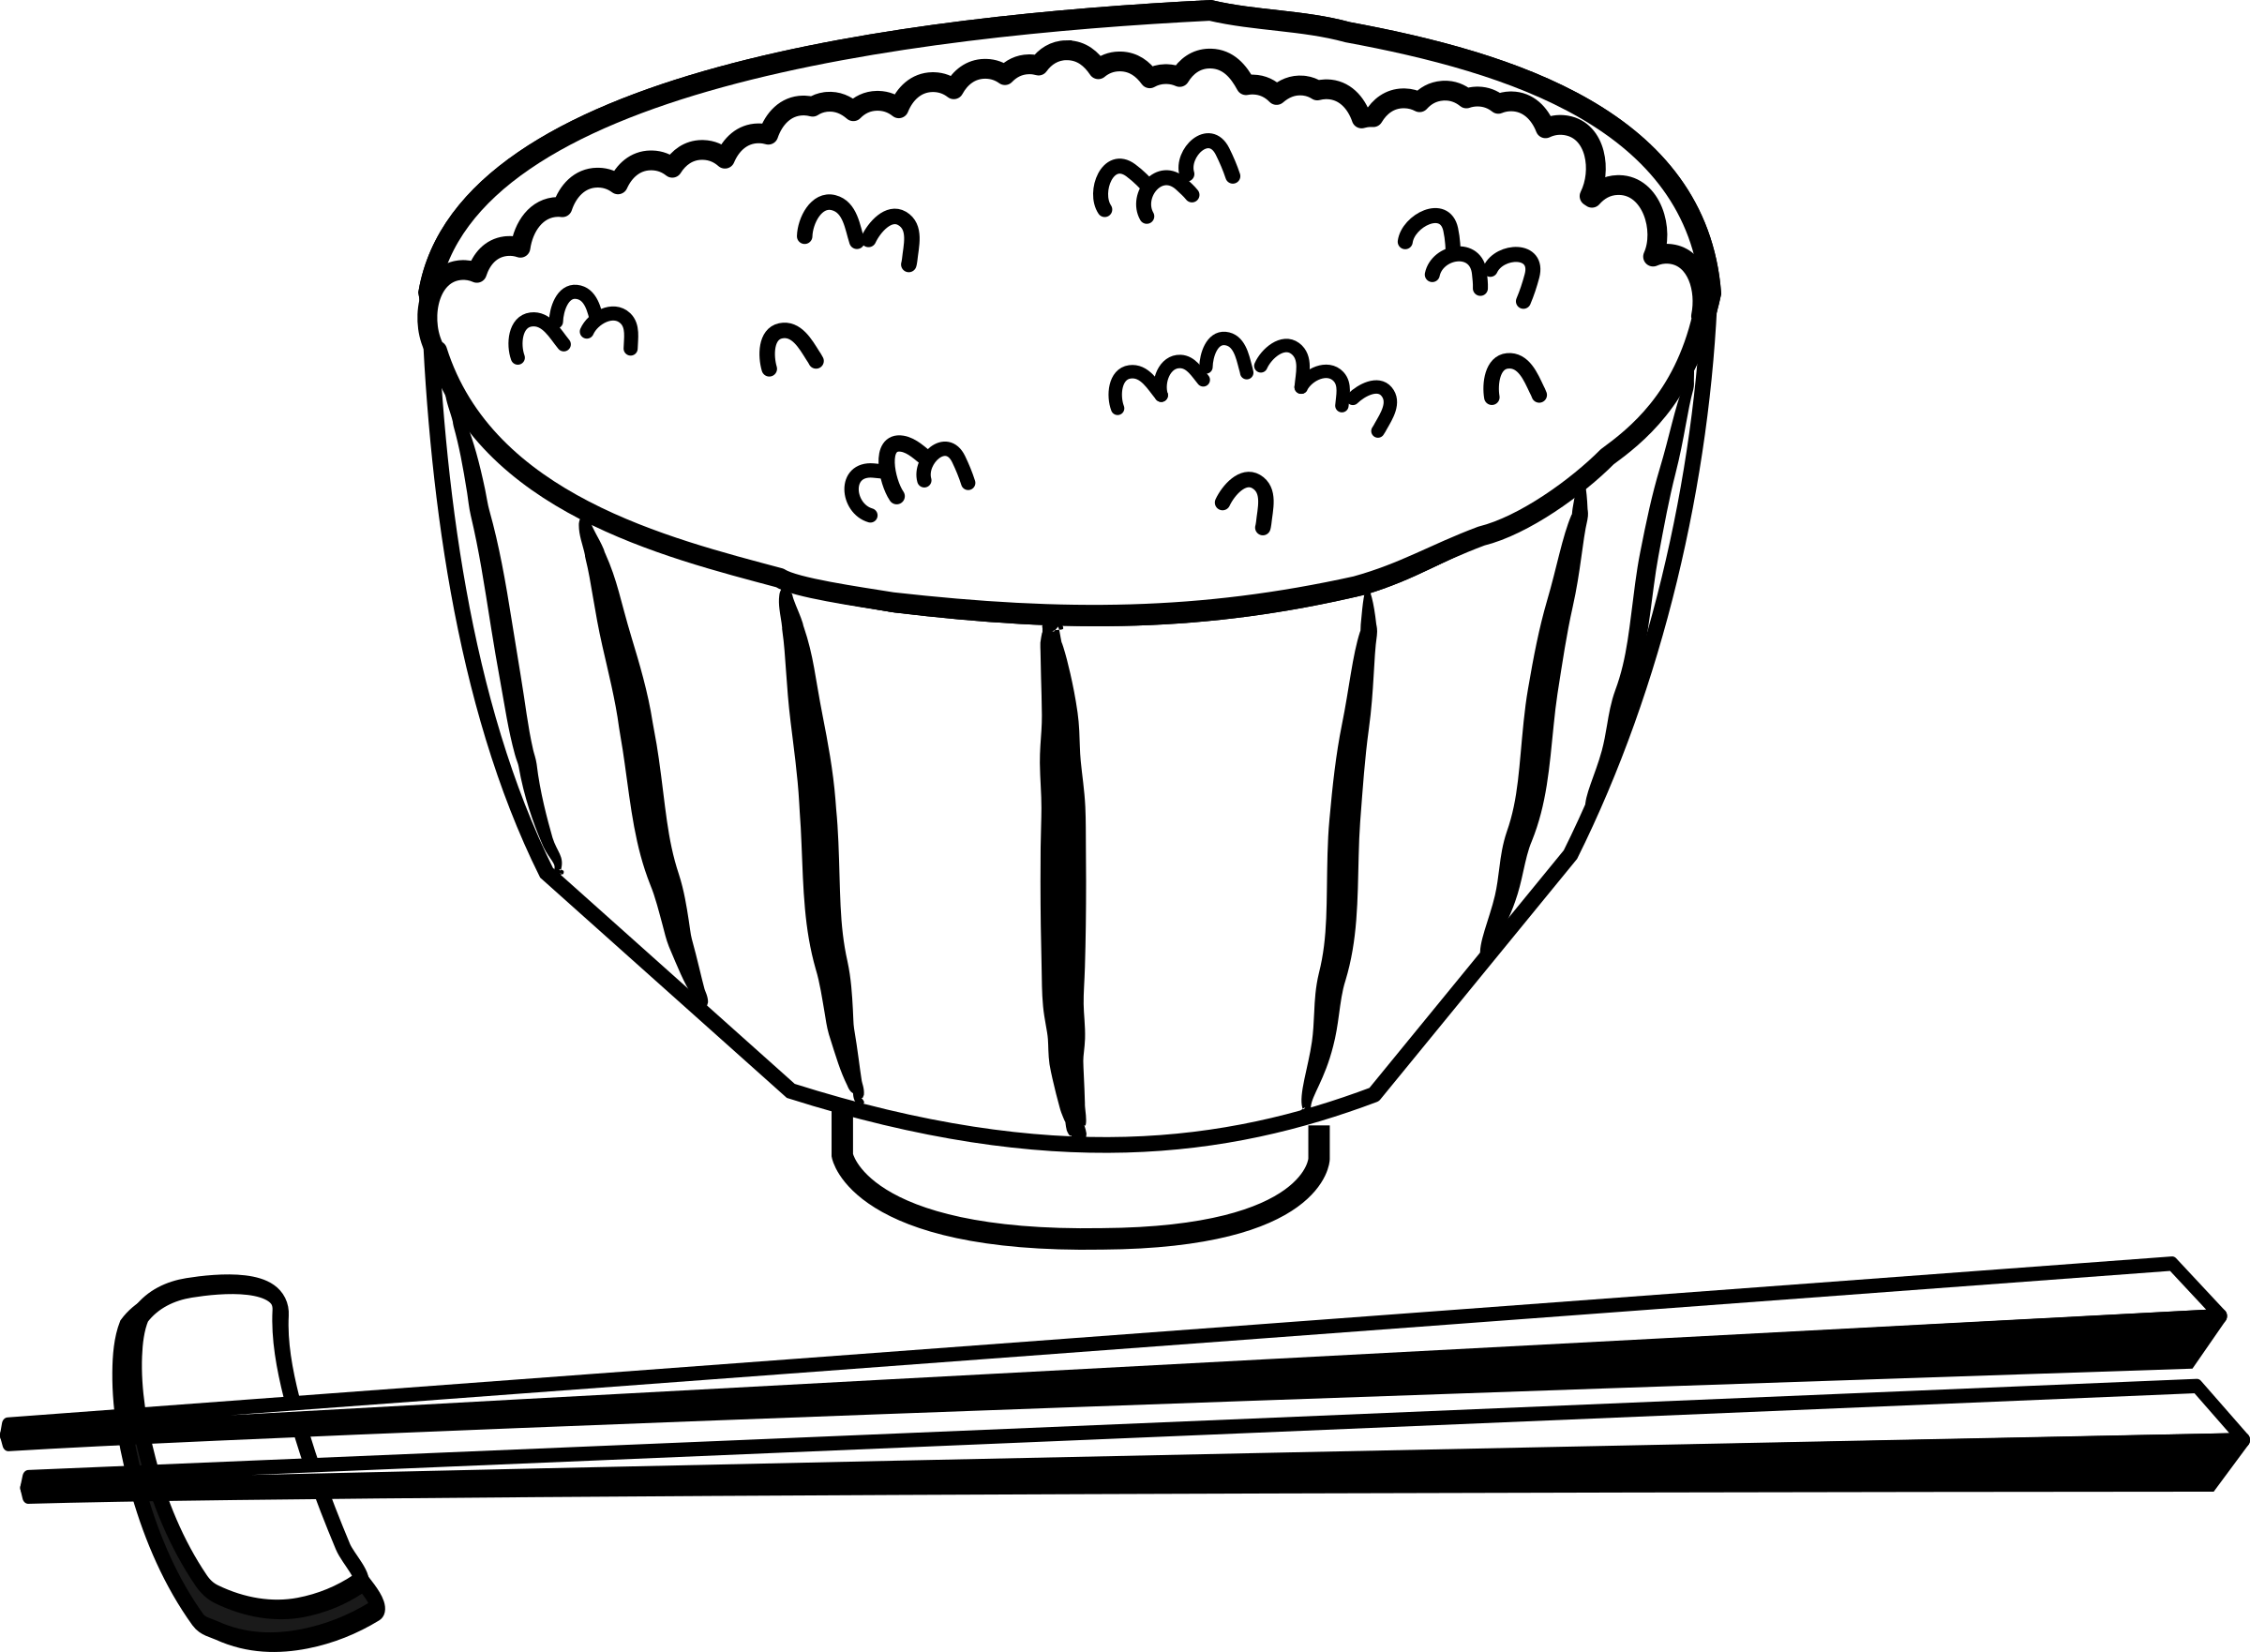 jpg transparent download Japanese rice icons png. Bowl clipart black and white